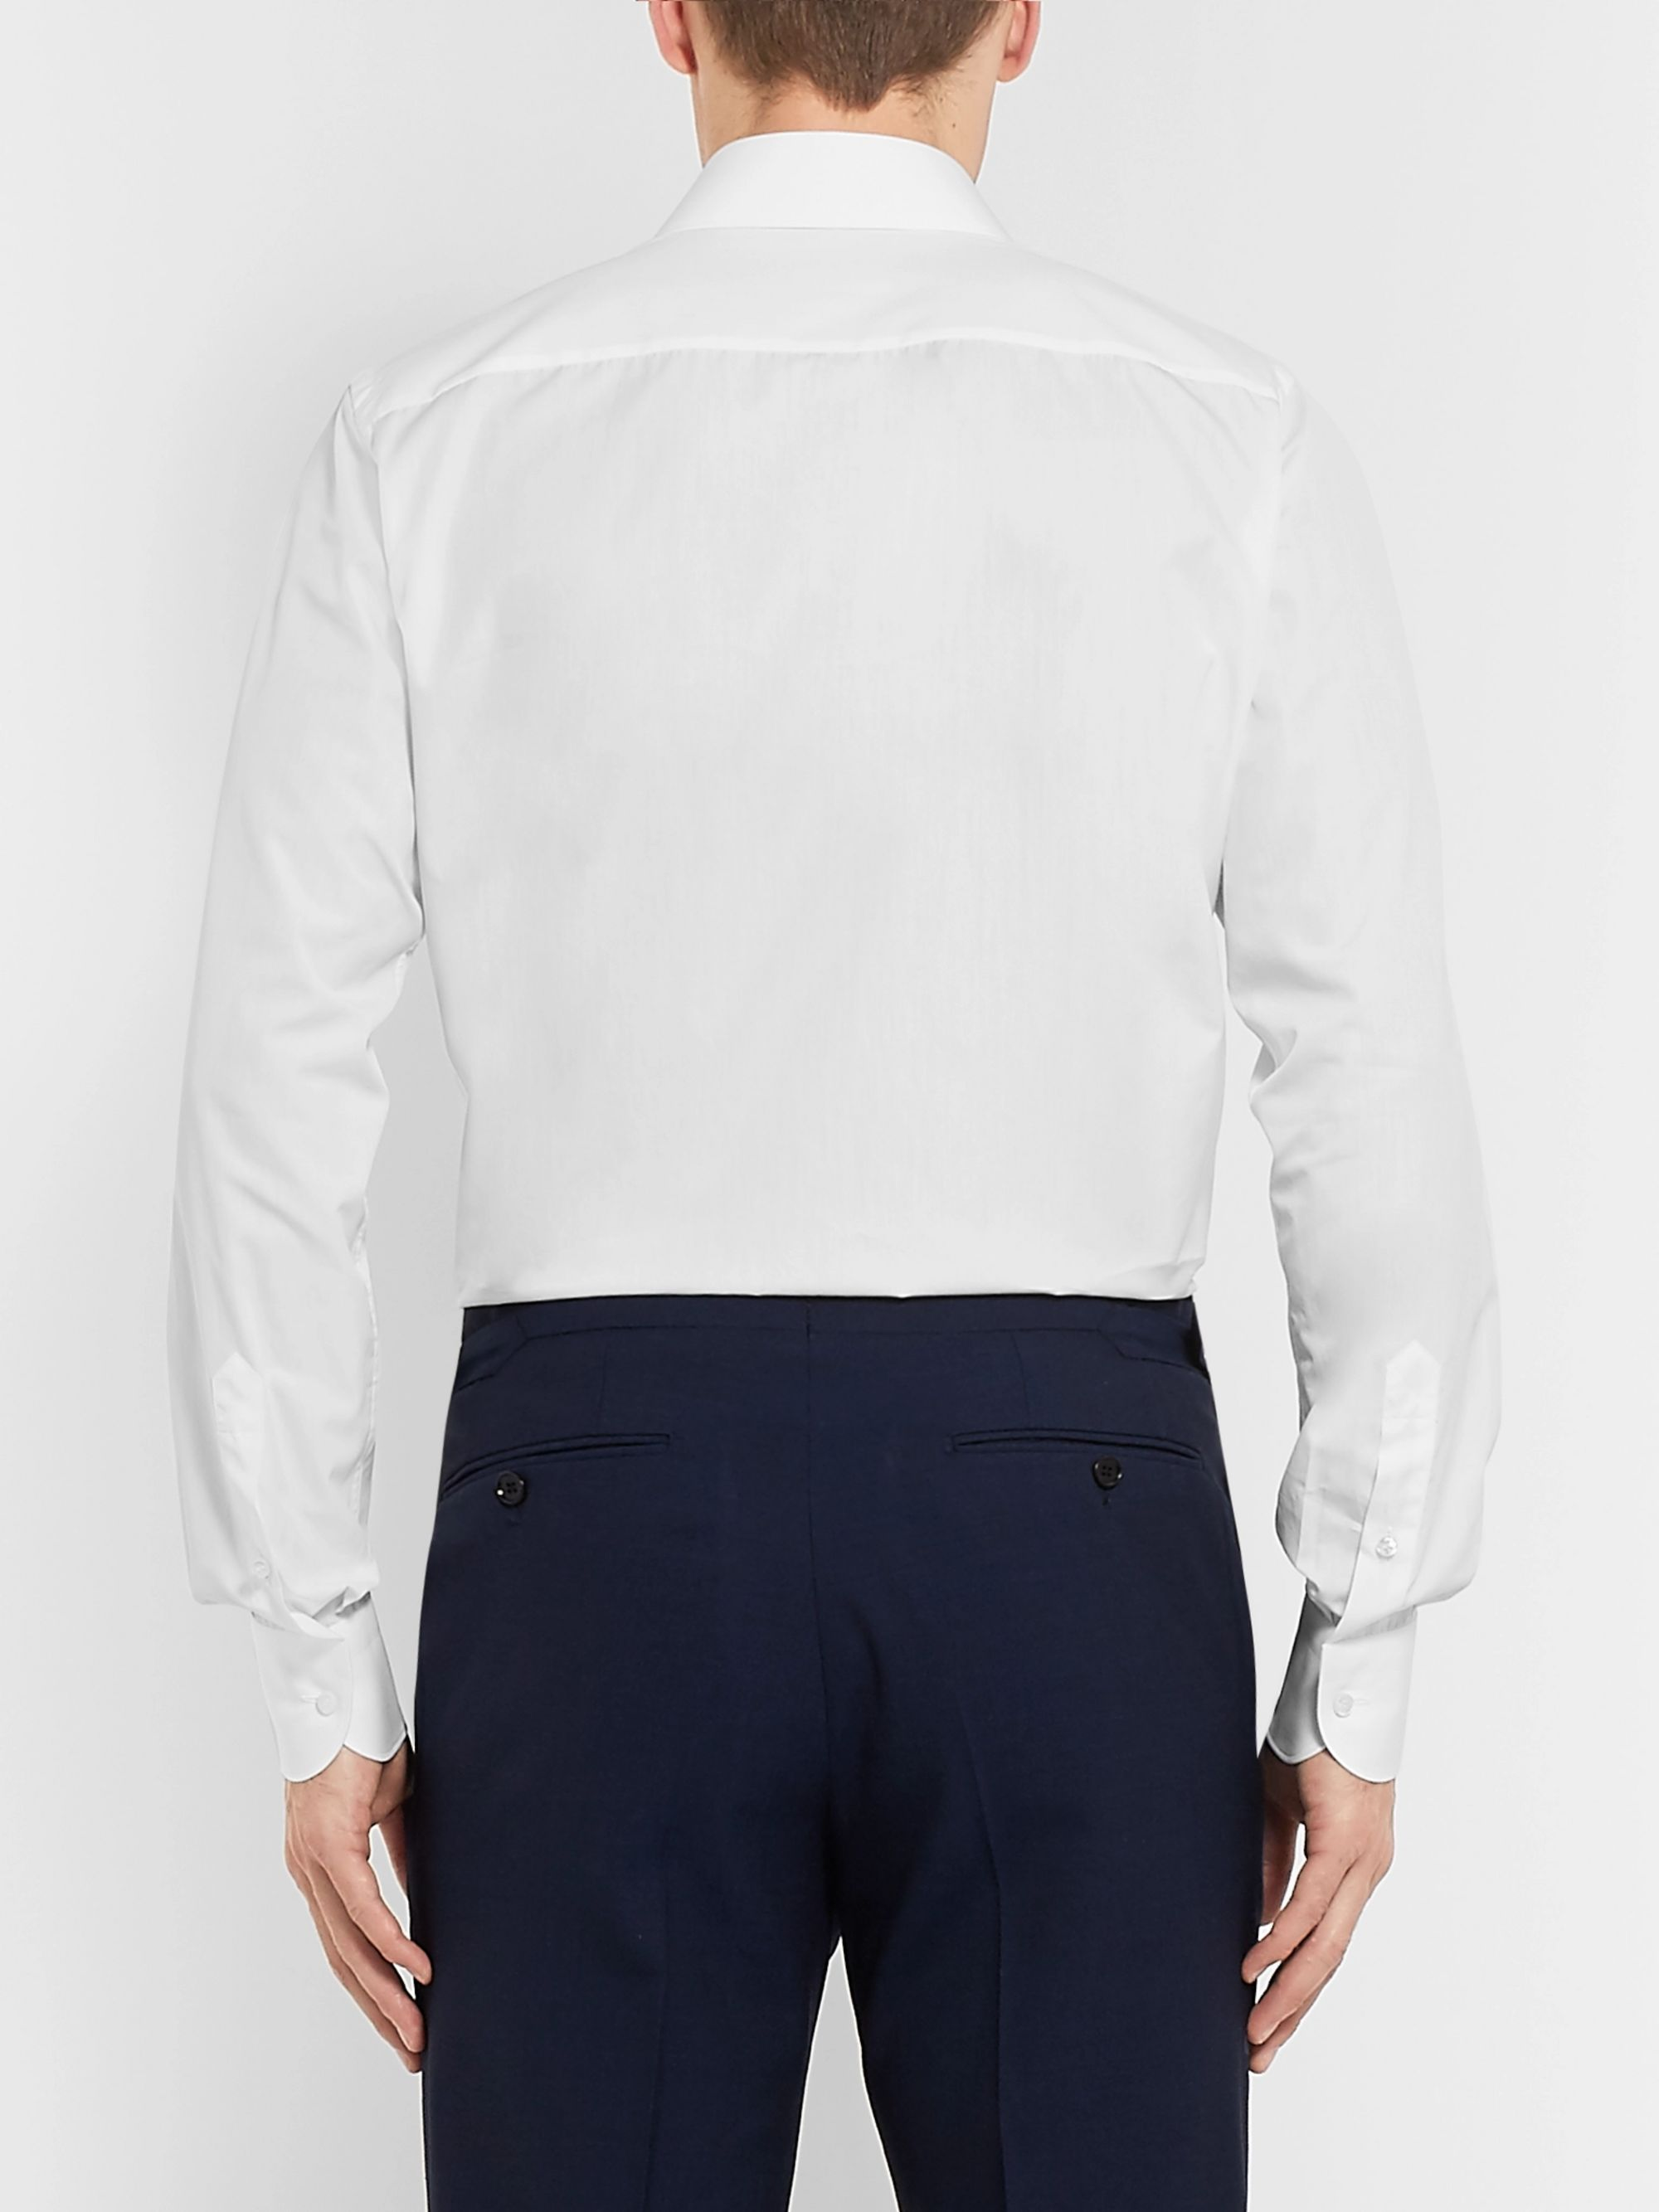 Brioni White Cotton-Poplin Shirt